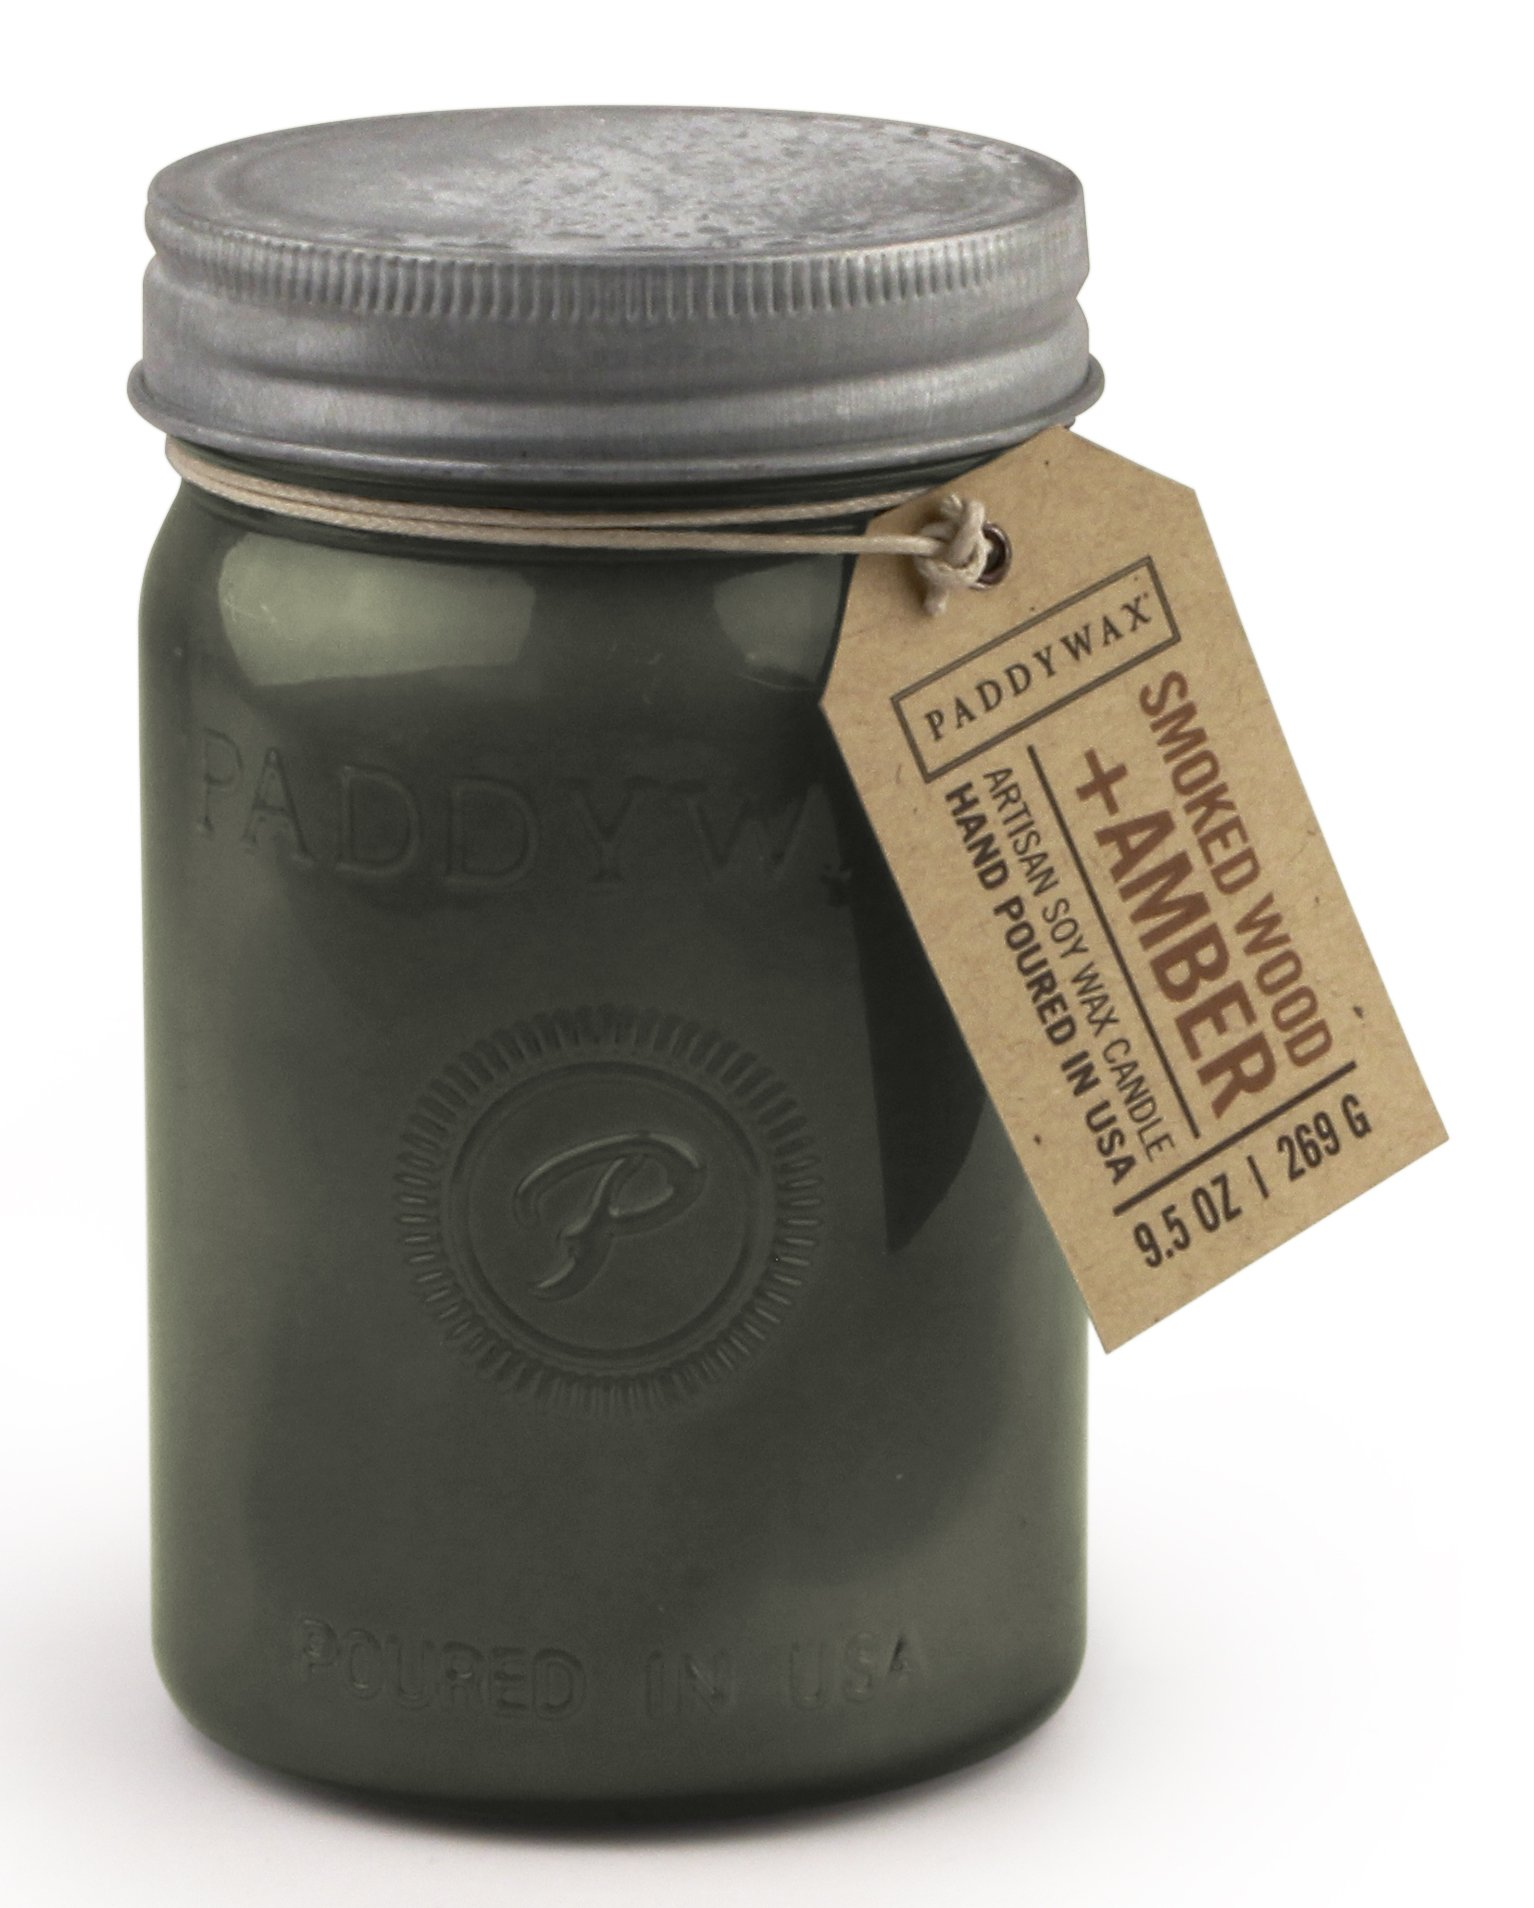 Paddywax Relish Collection Scented Soy Wax Jar Candle, 9.5-Ounce, Smoked Amber & Wood by Paddywax (Image #1)